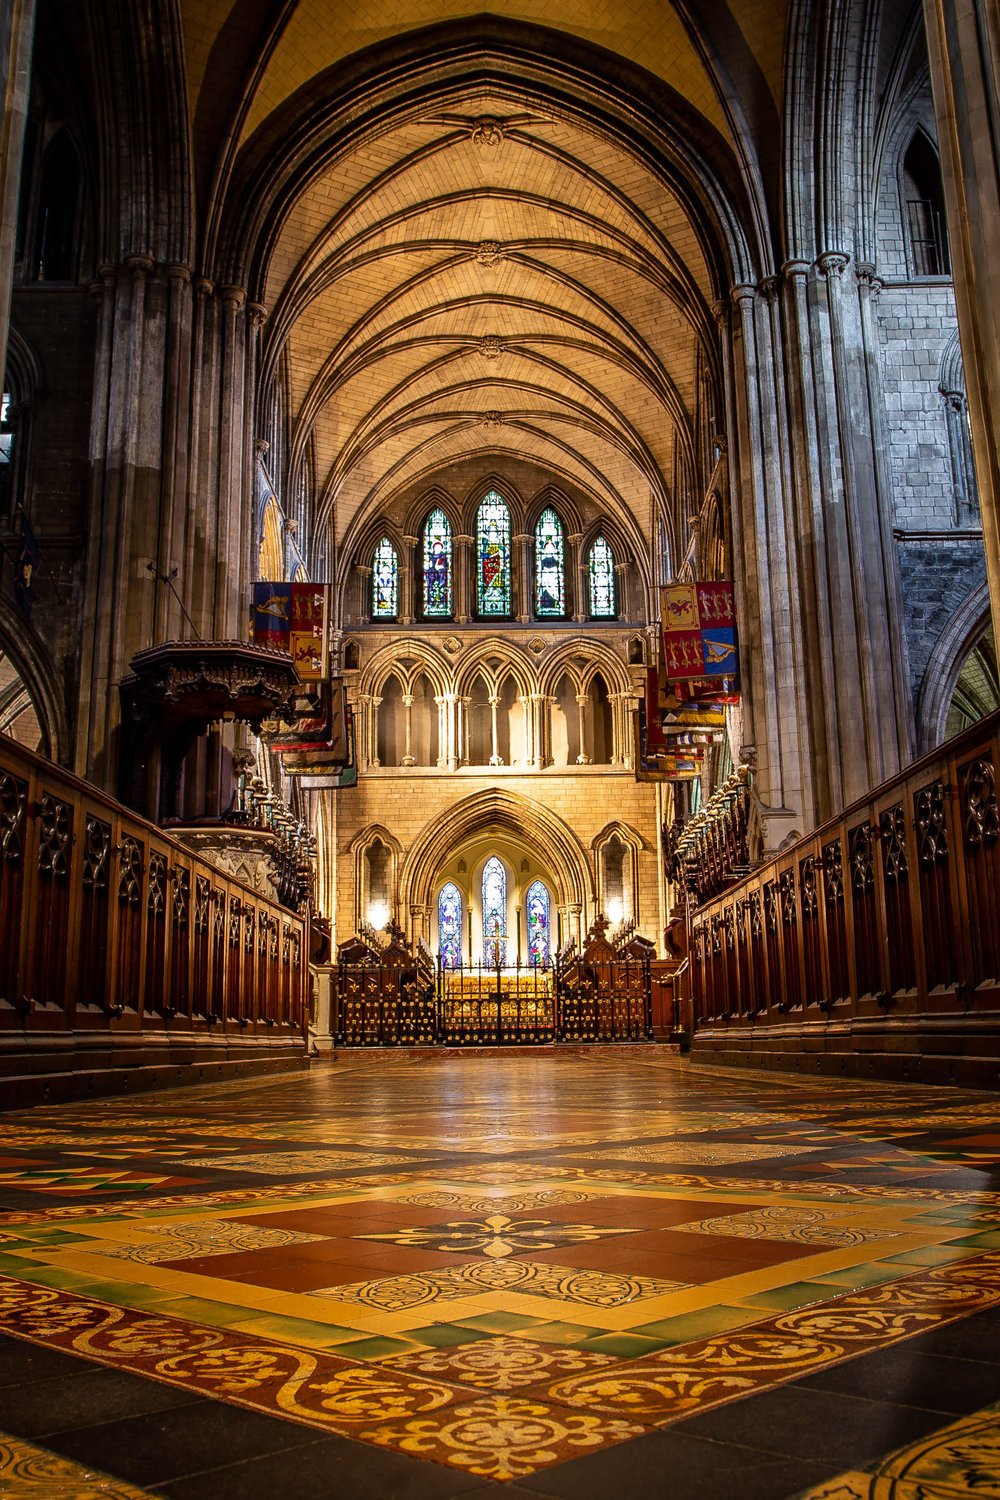 Pictured: St. Patrick's Cathedral, Dublin;Photo Credit: Cathy Baitson.